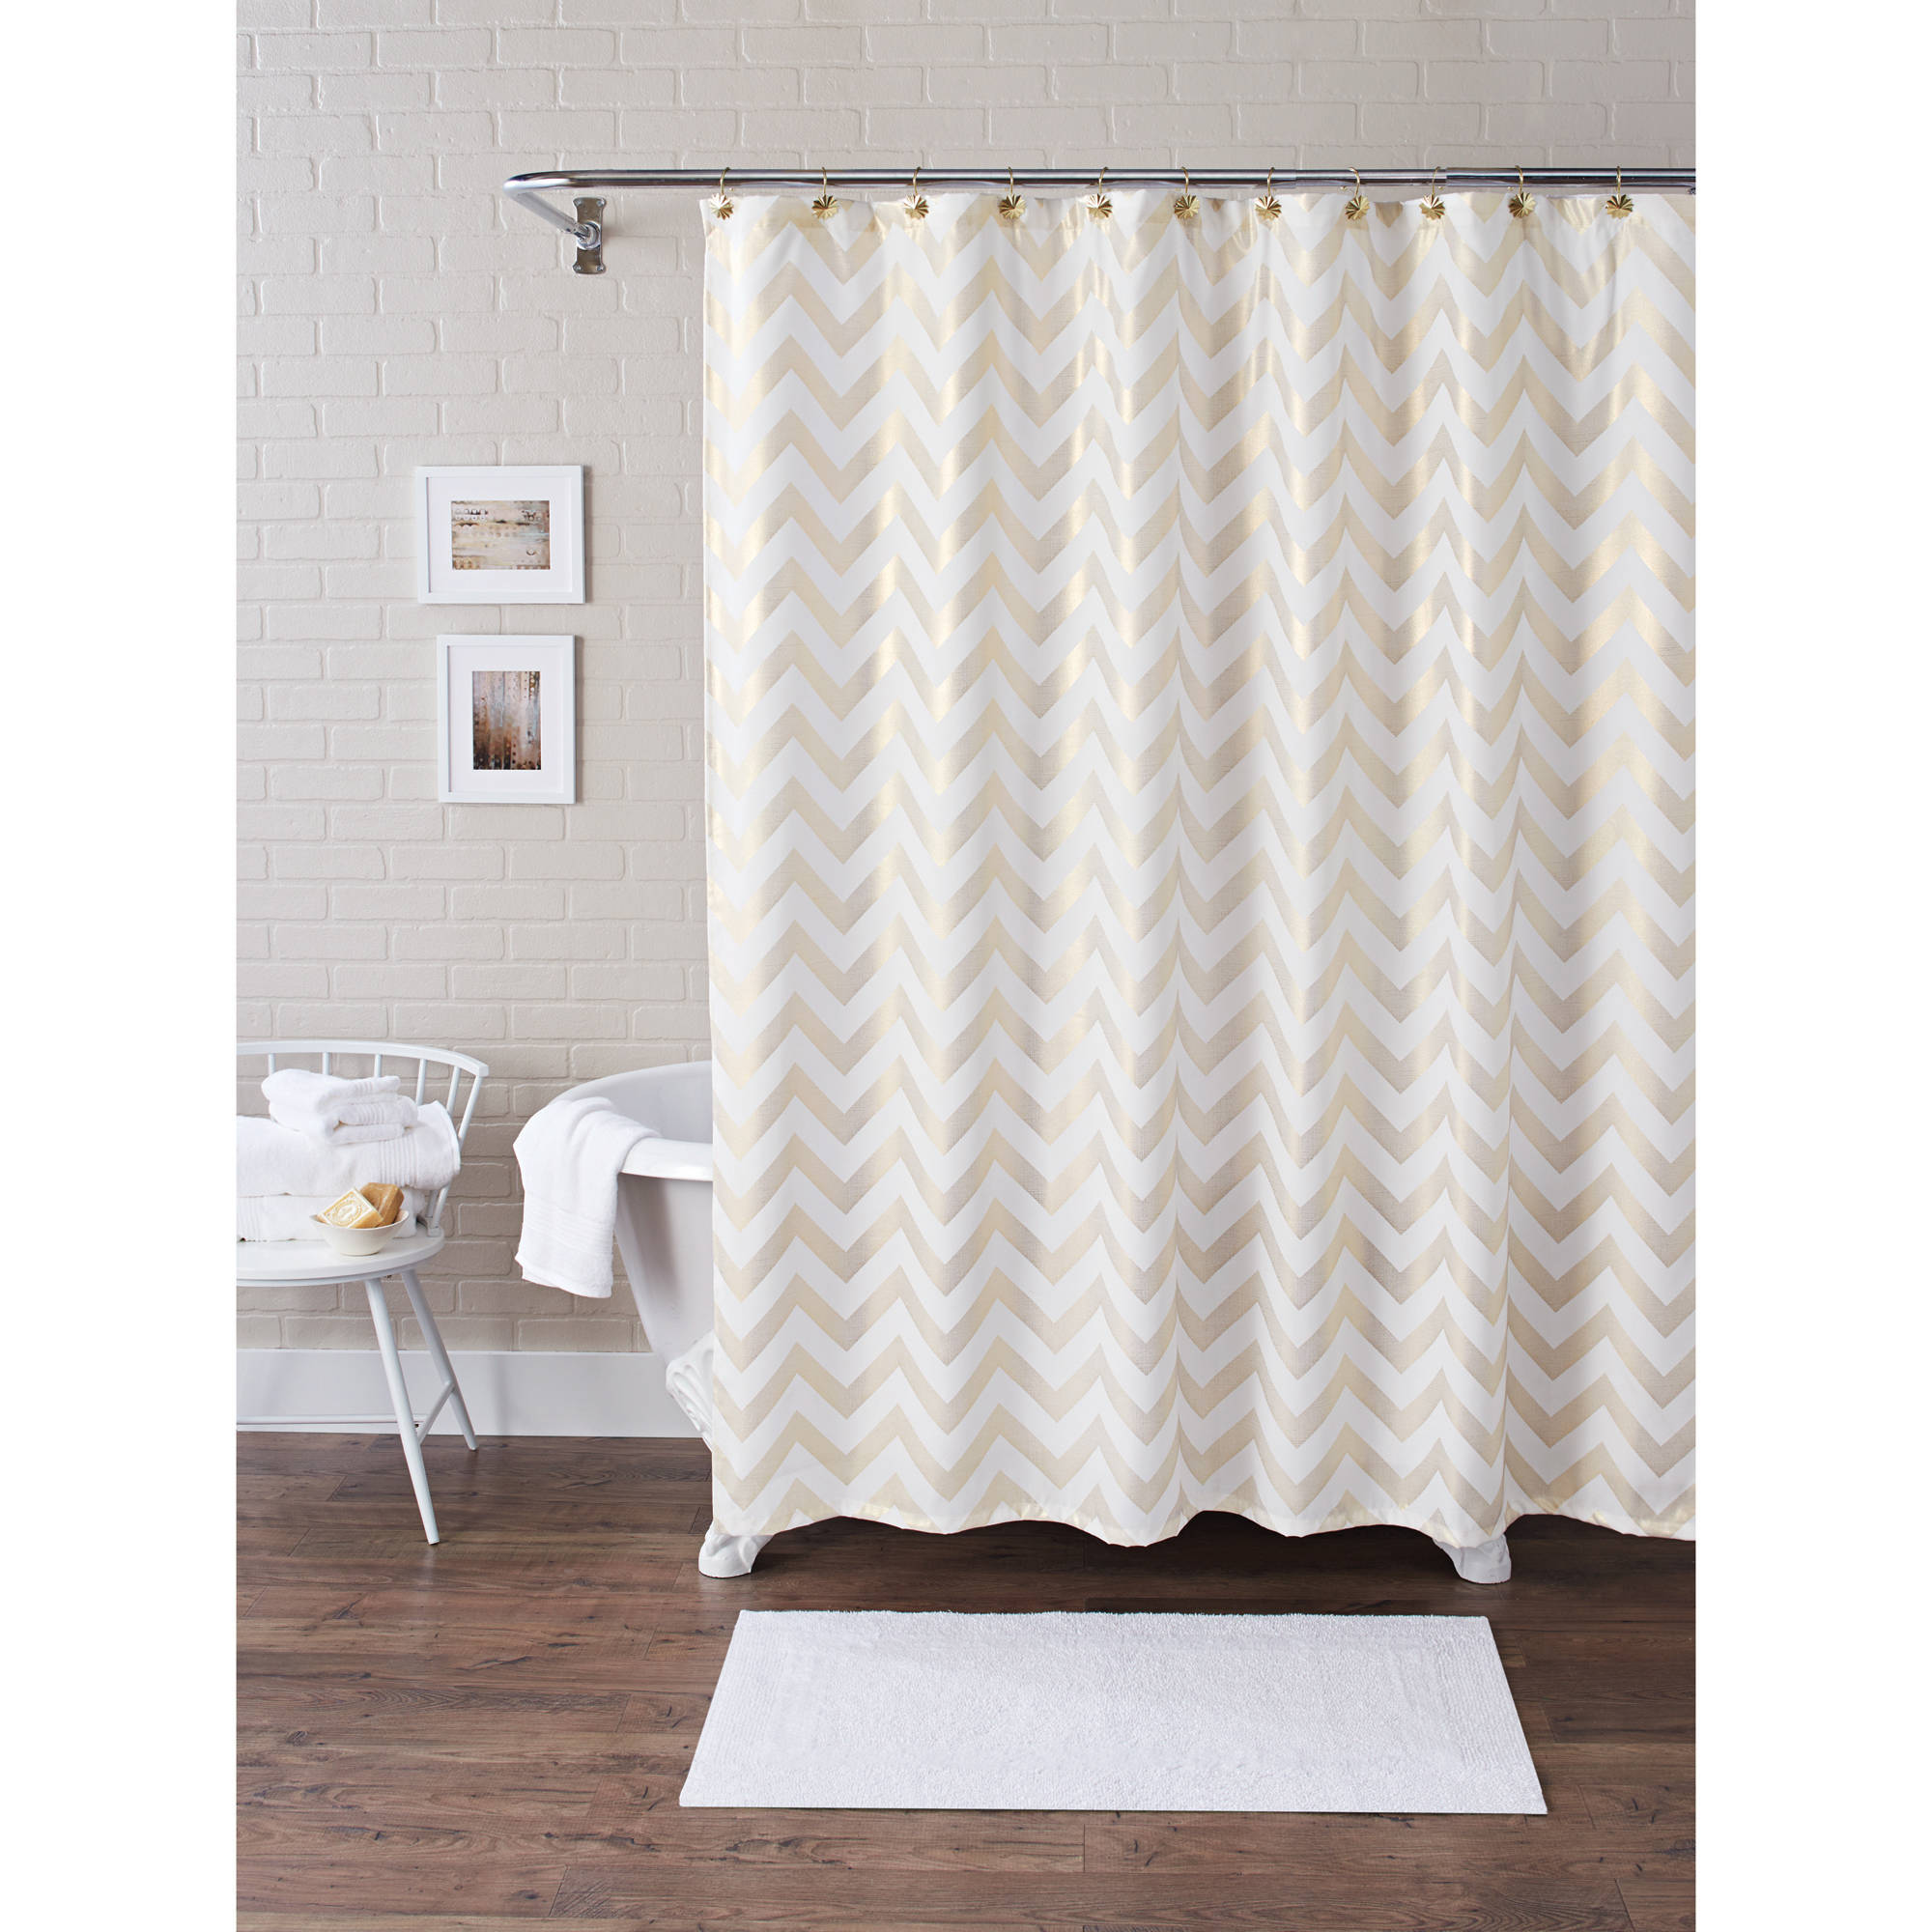 Gold Shower Curtains - Walmart.com